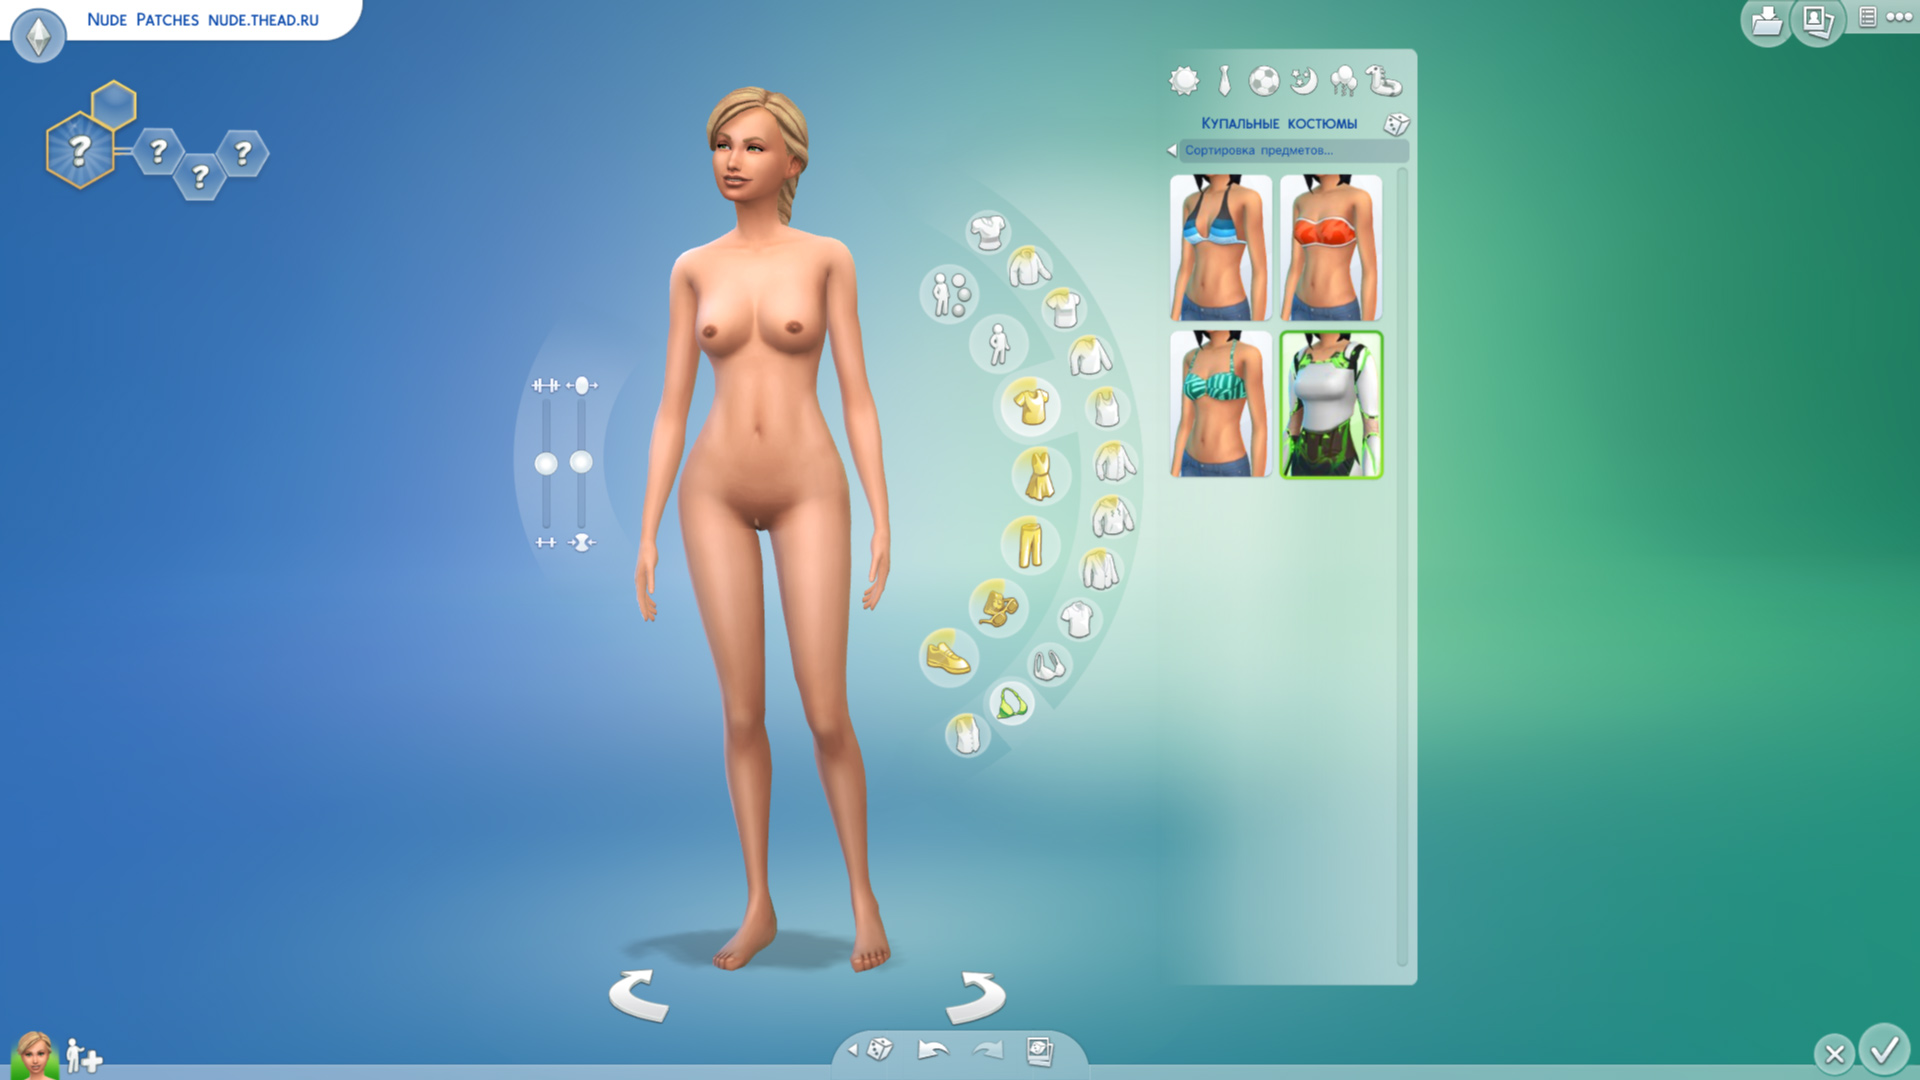 Sims 3 nude patch images sexual image